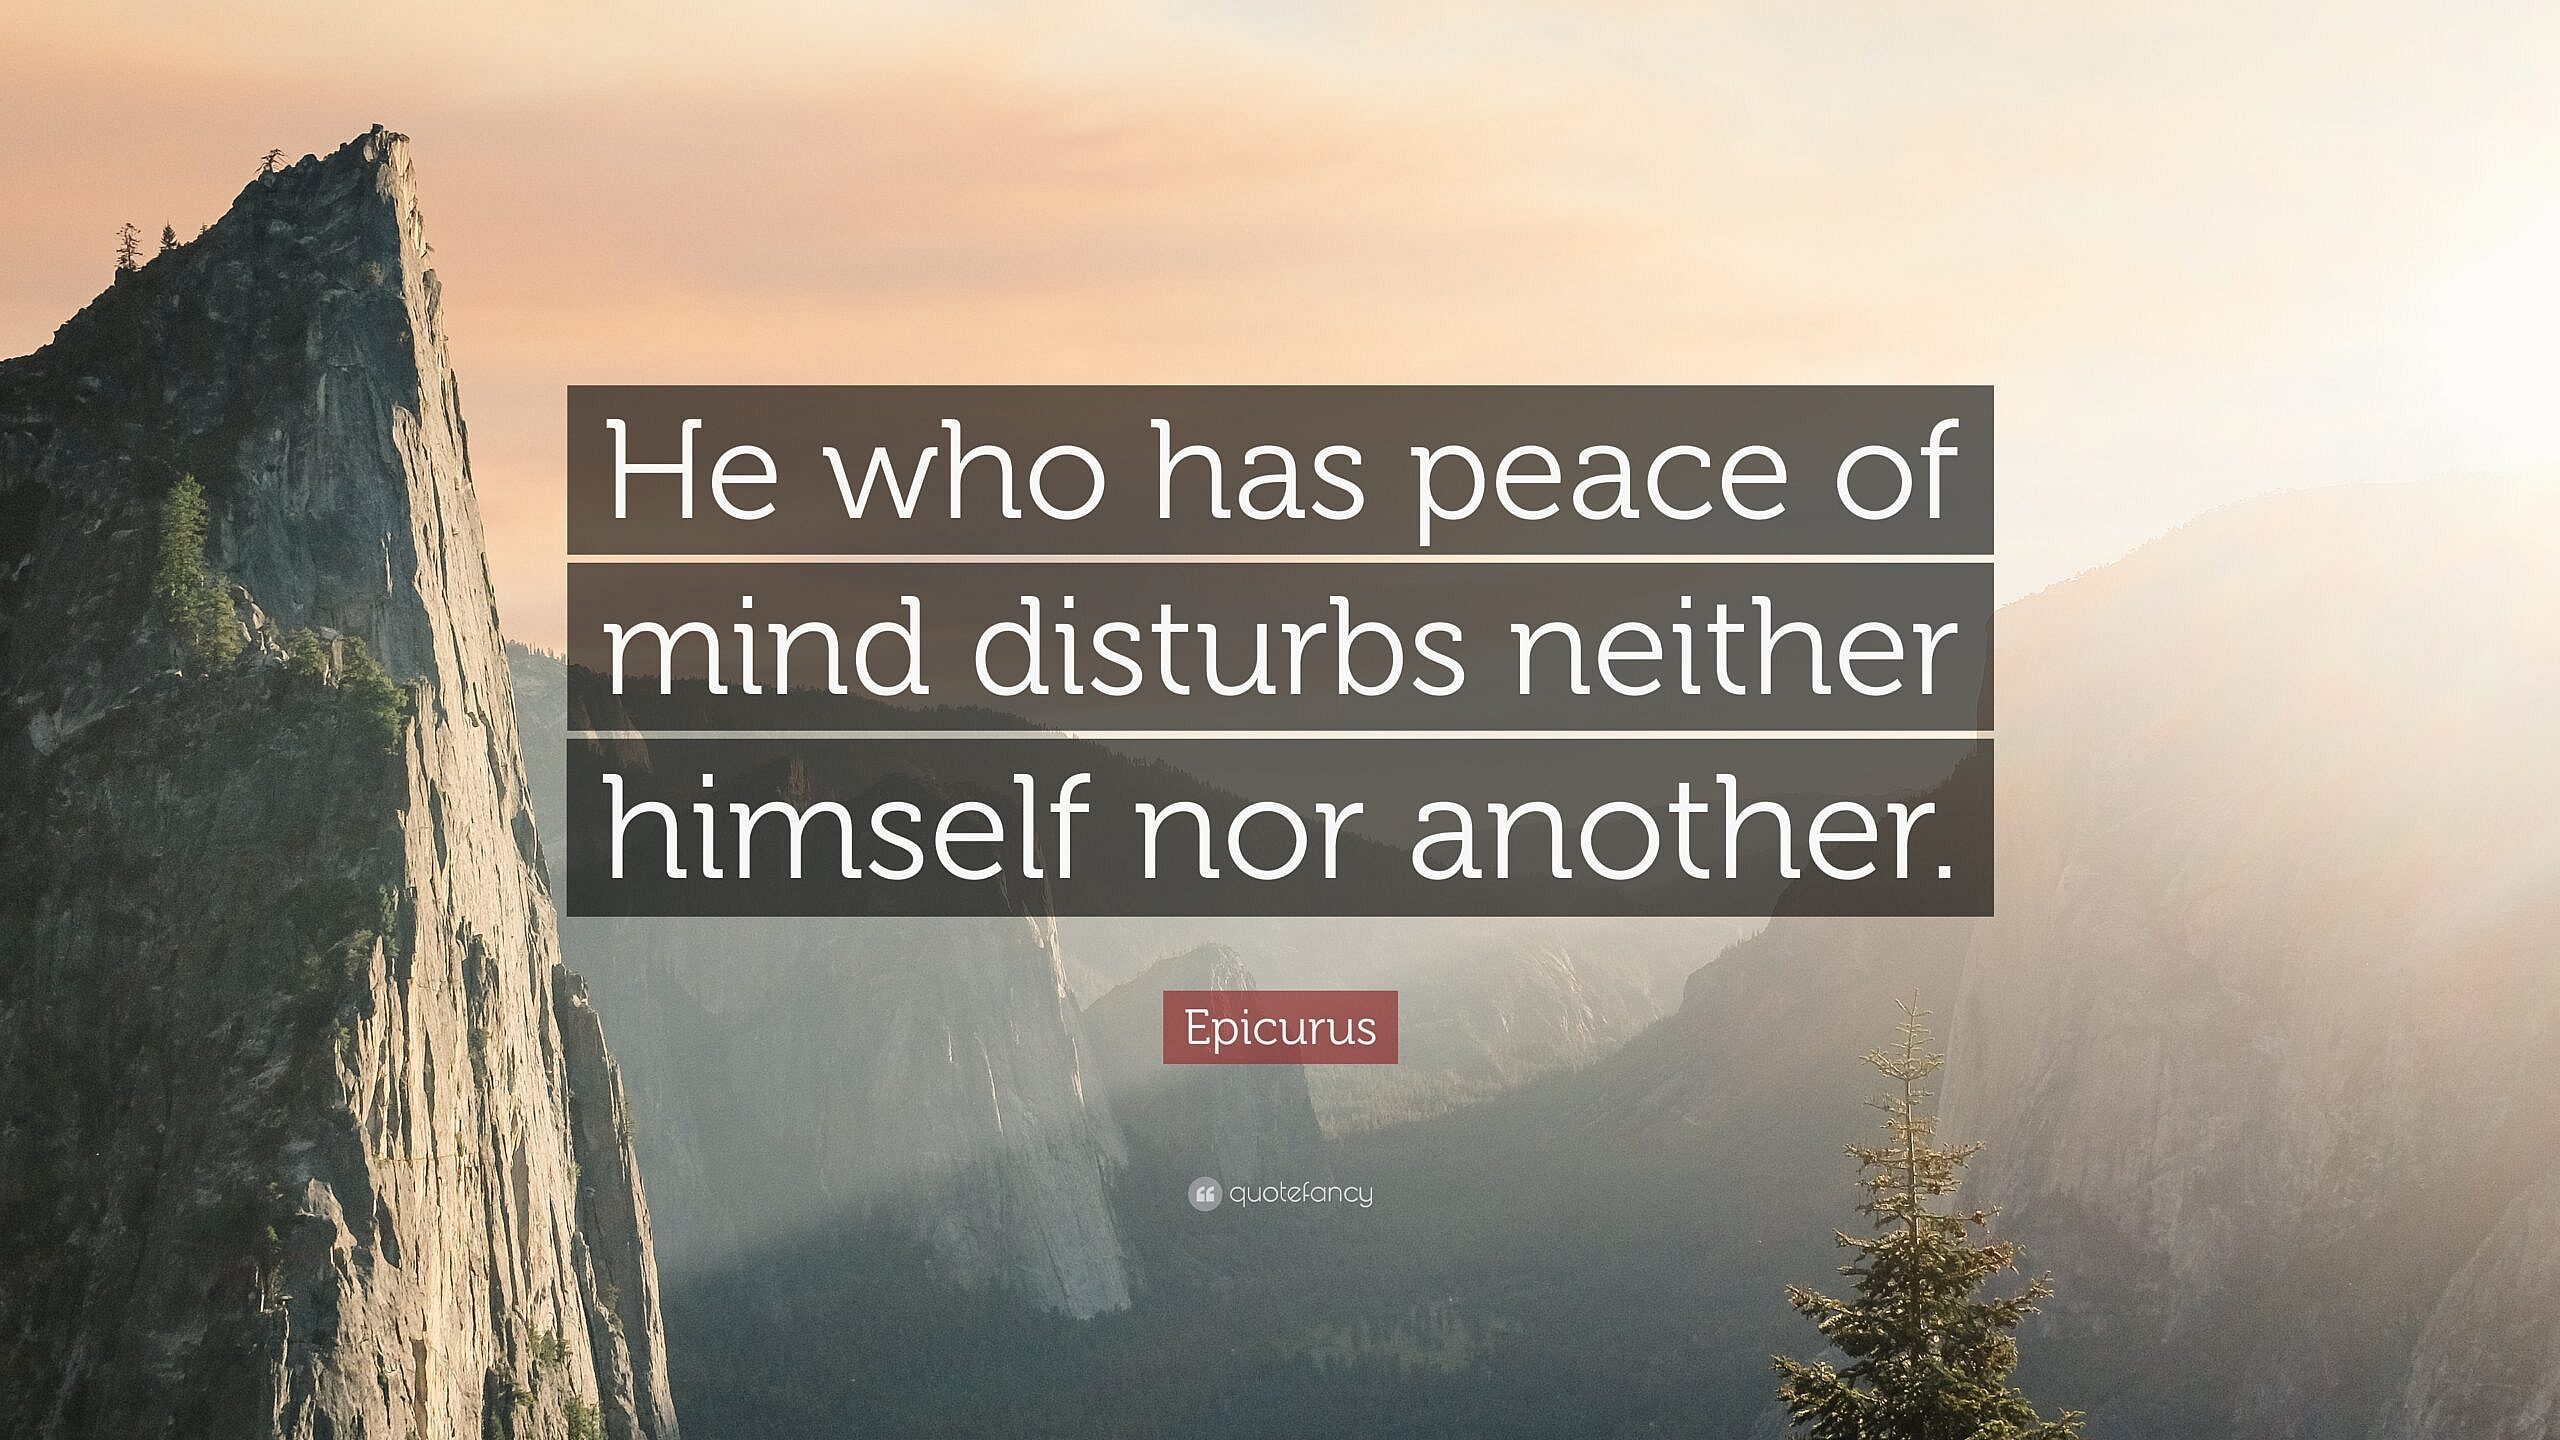 'He who has peace of mind disturbs neither himself nor another.'